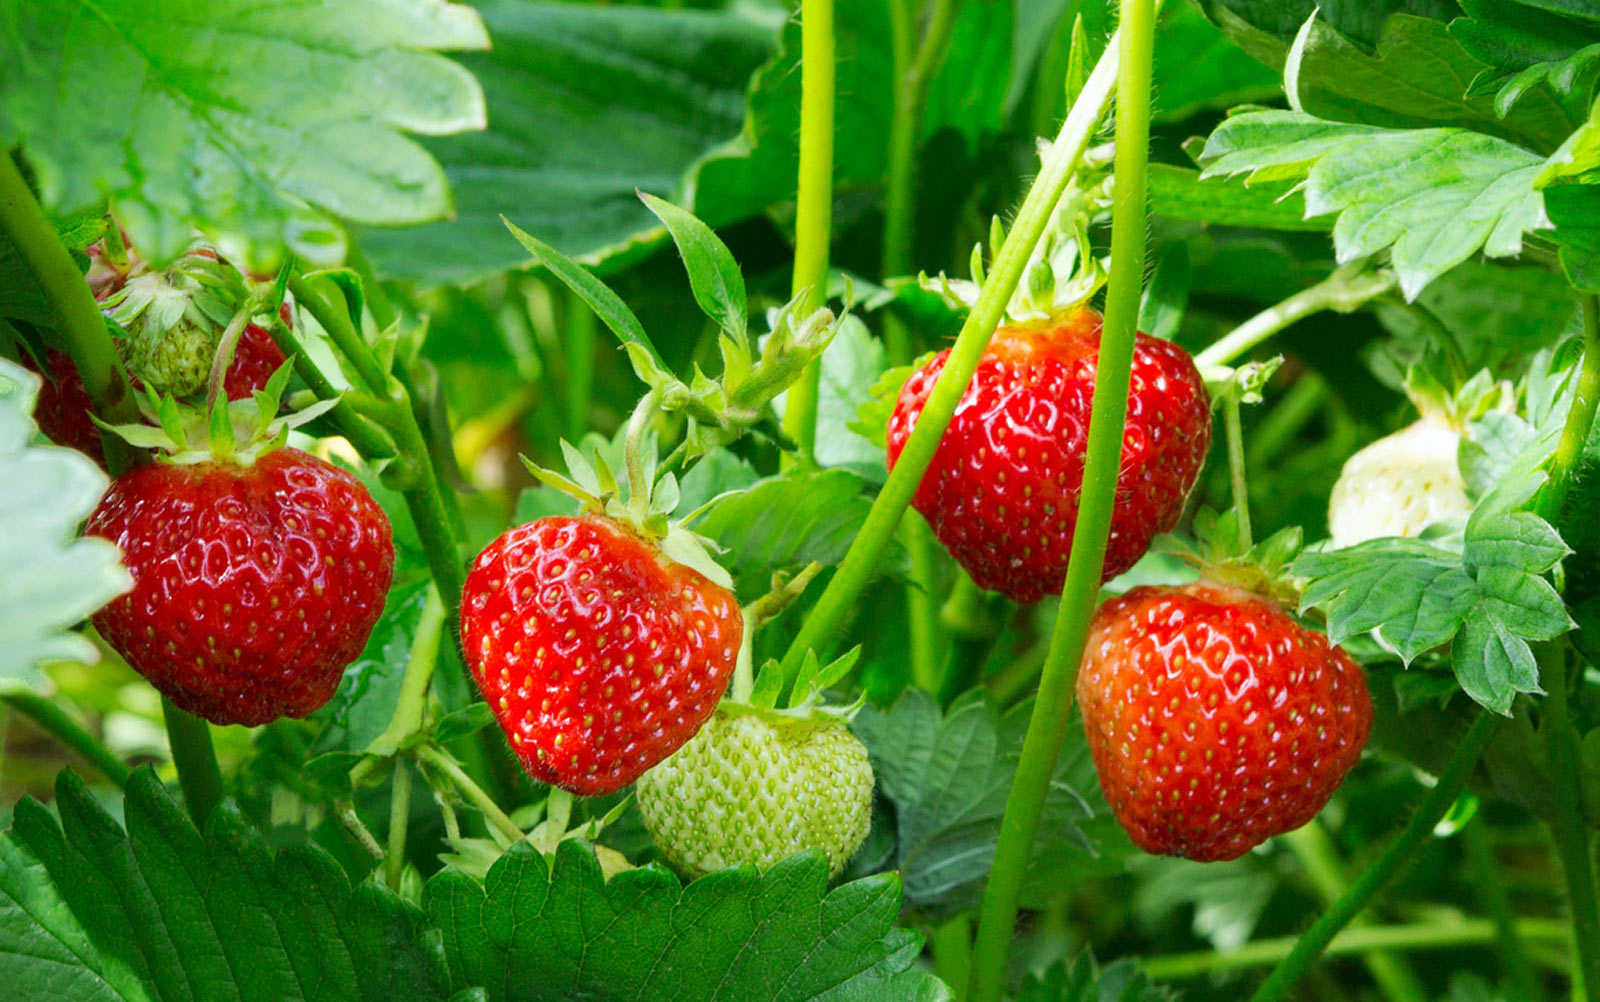 Grow your own strawberries…indoors!